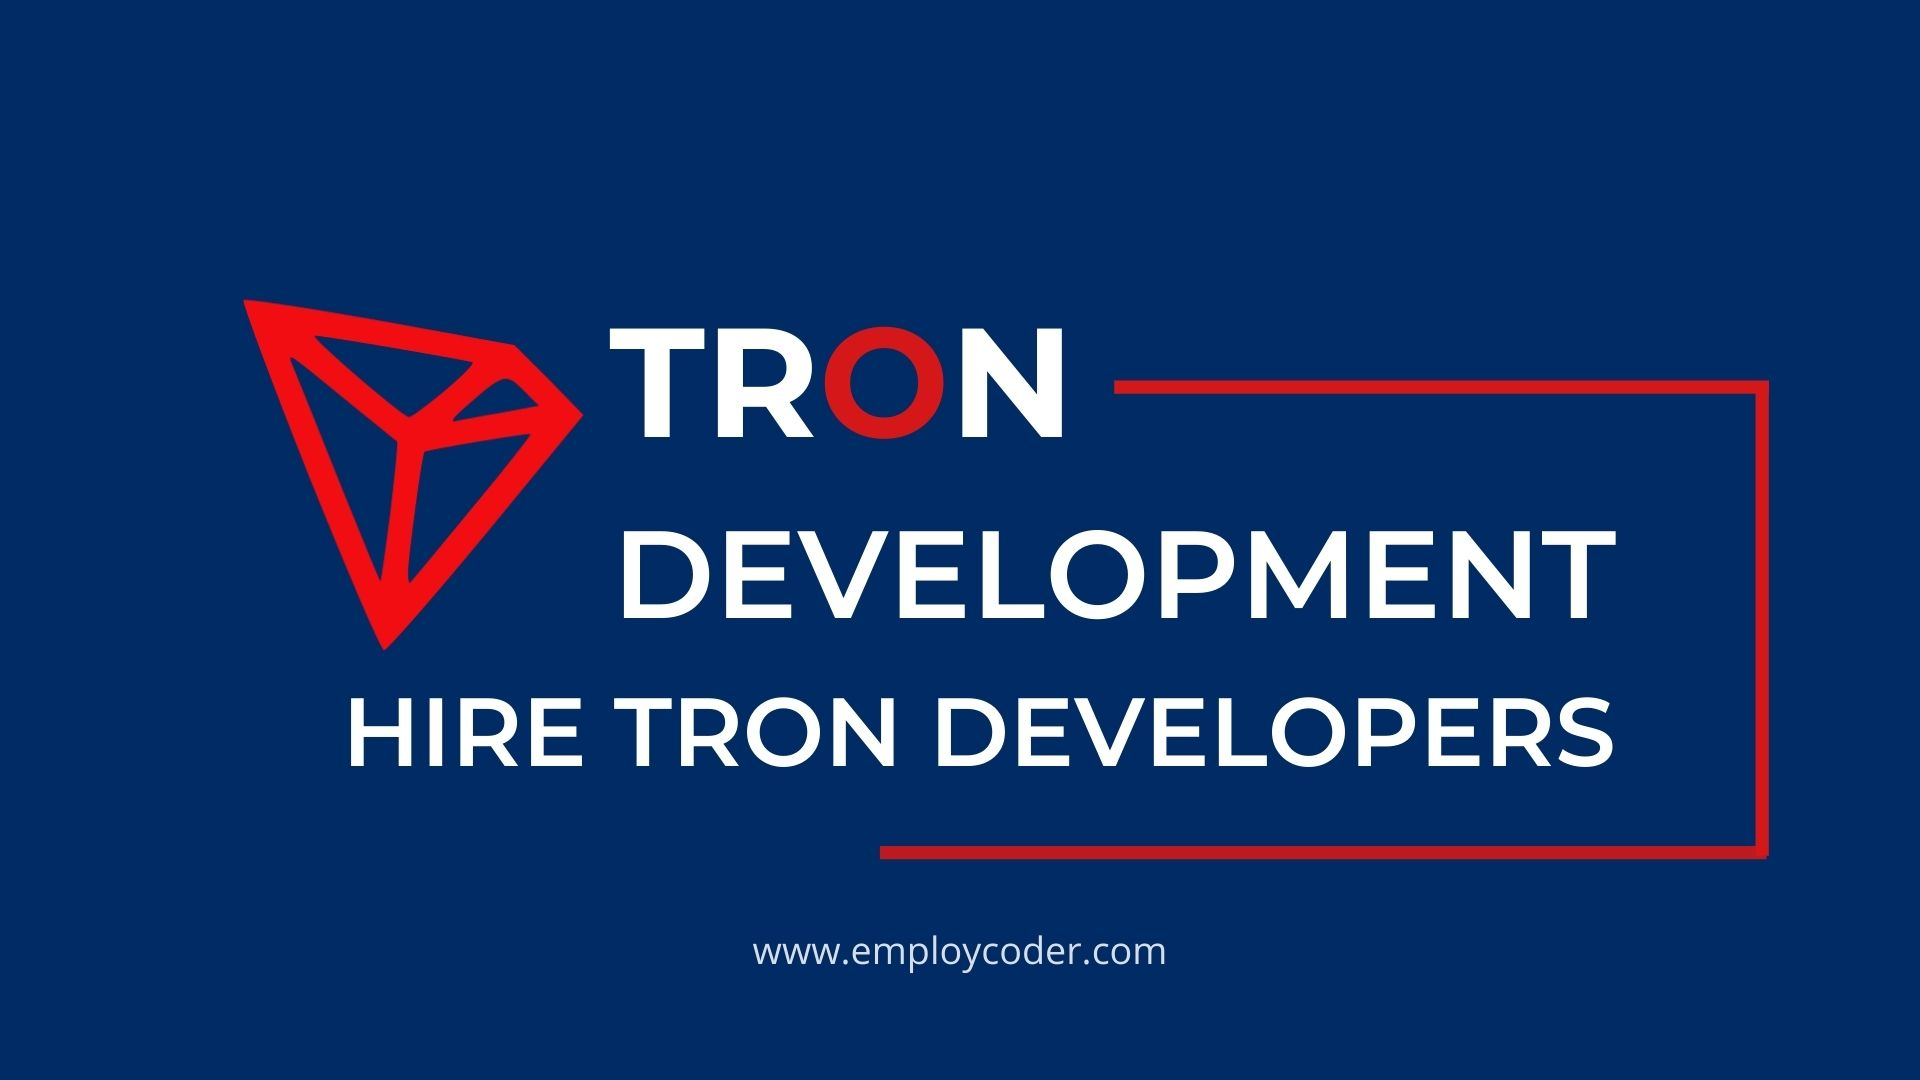 Hire Tron Developers to Build Next-Gen Tron DApps For Your Business